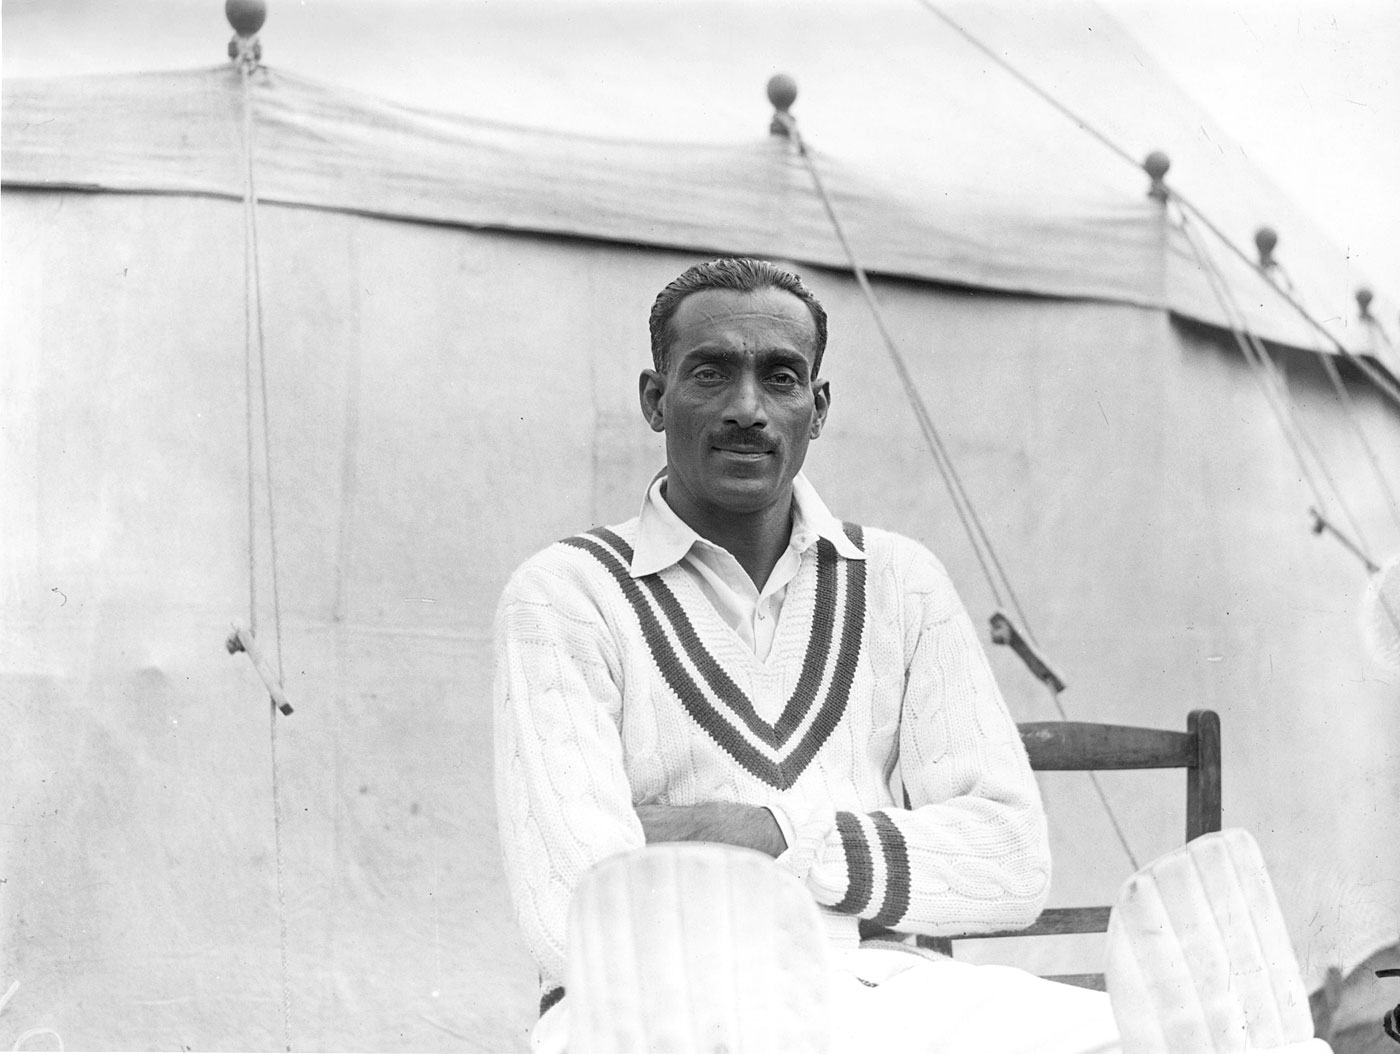 In 1932, CK Nayudu reportedly hit a six to the next county, clearing the Rea river at Edgbaston